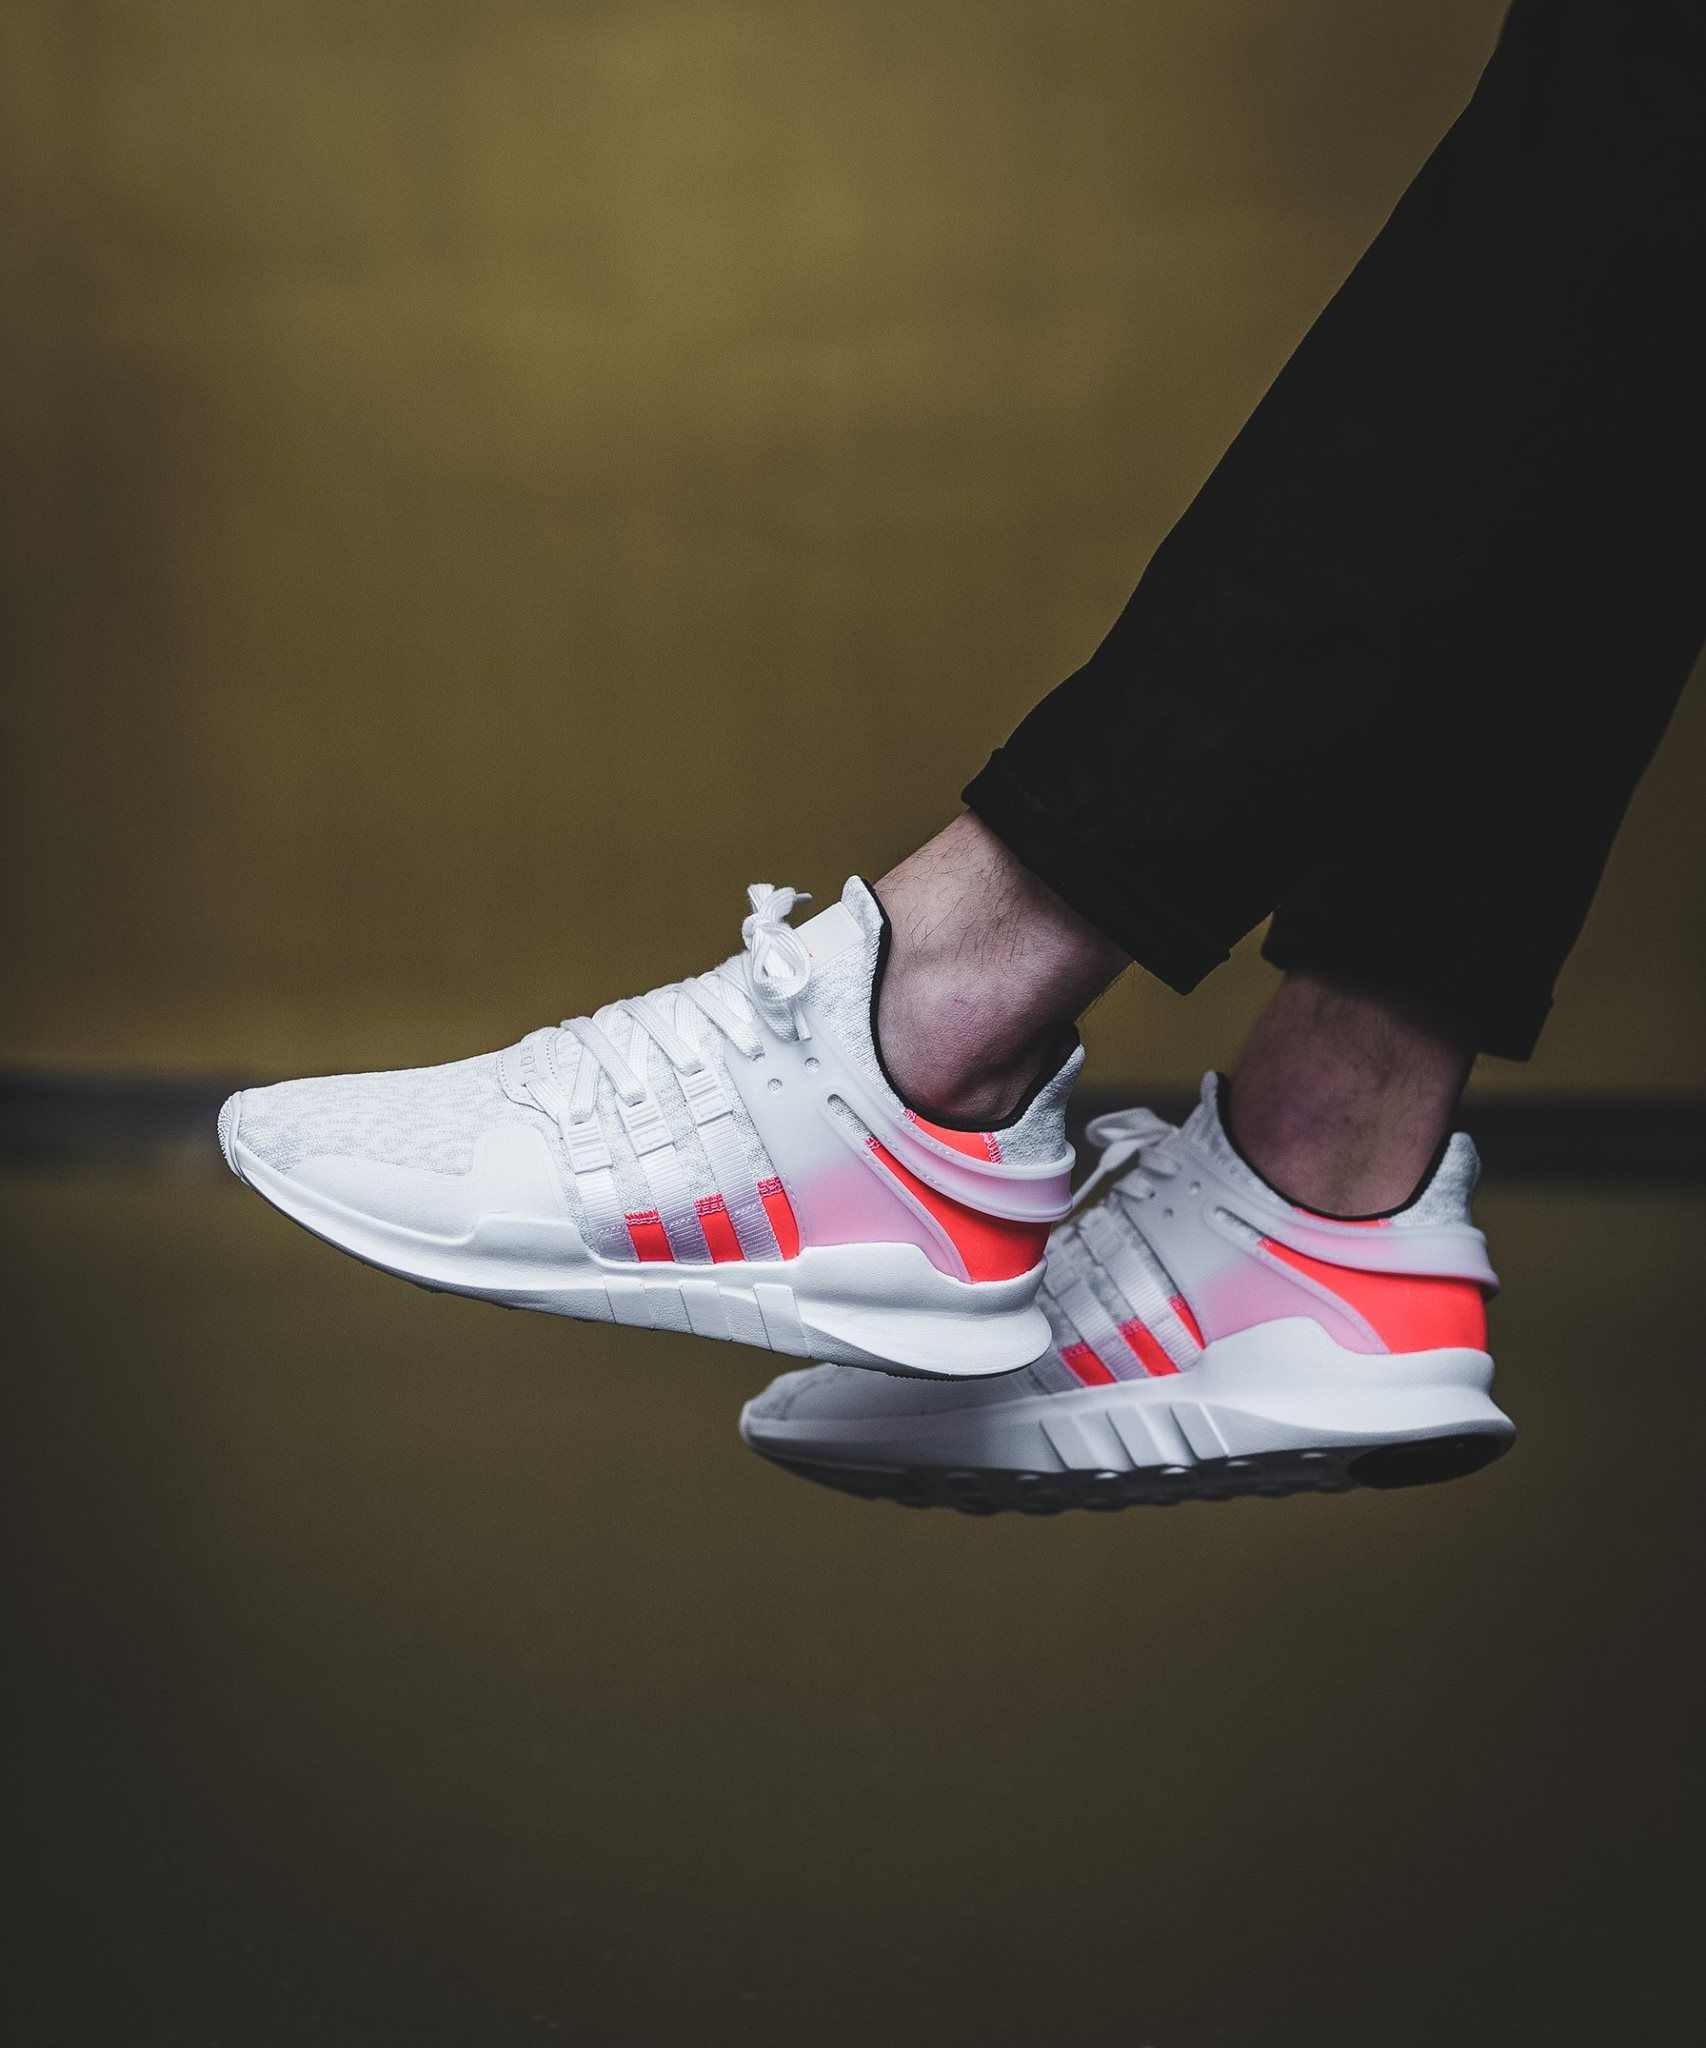 super popular 7c8e4 3c37f adidas Eqt Support ADV Crystal White  Turbo (BB2791) - KICKS-DAILY.COM